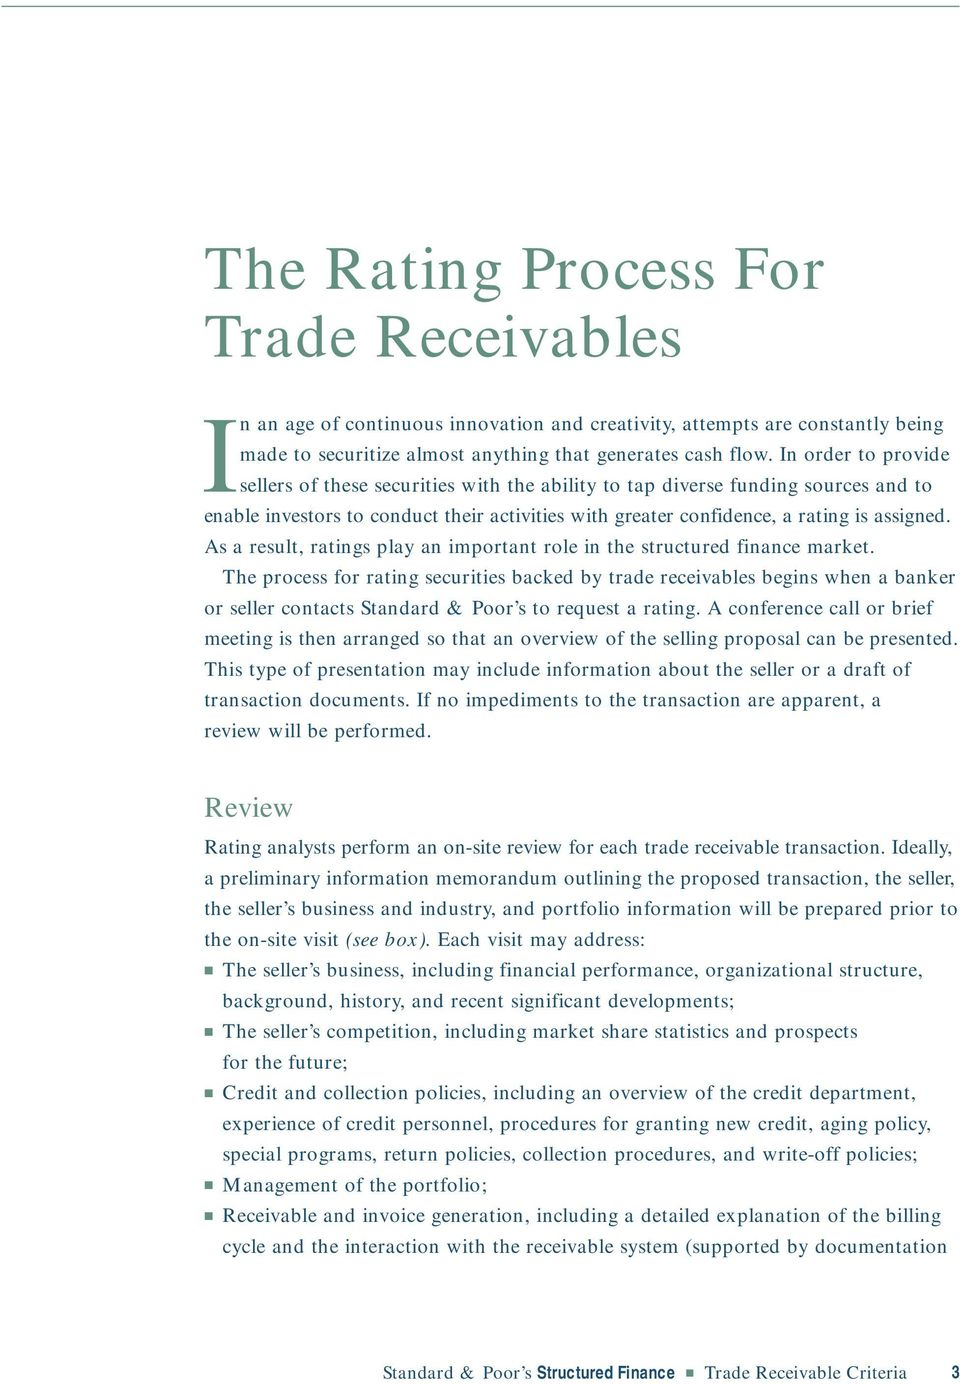 As a result, ratings play an important role in the structured finance market.